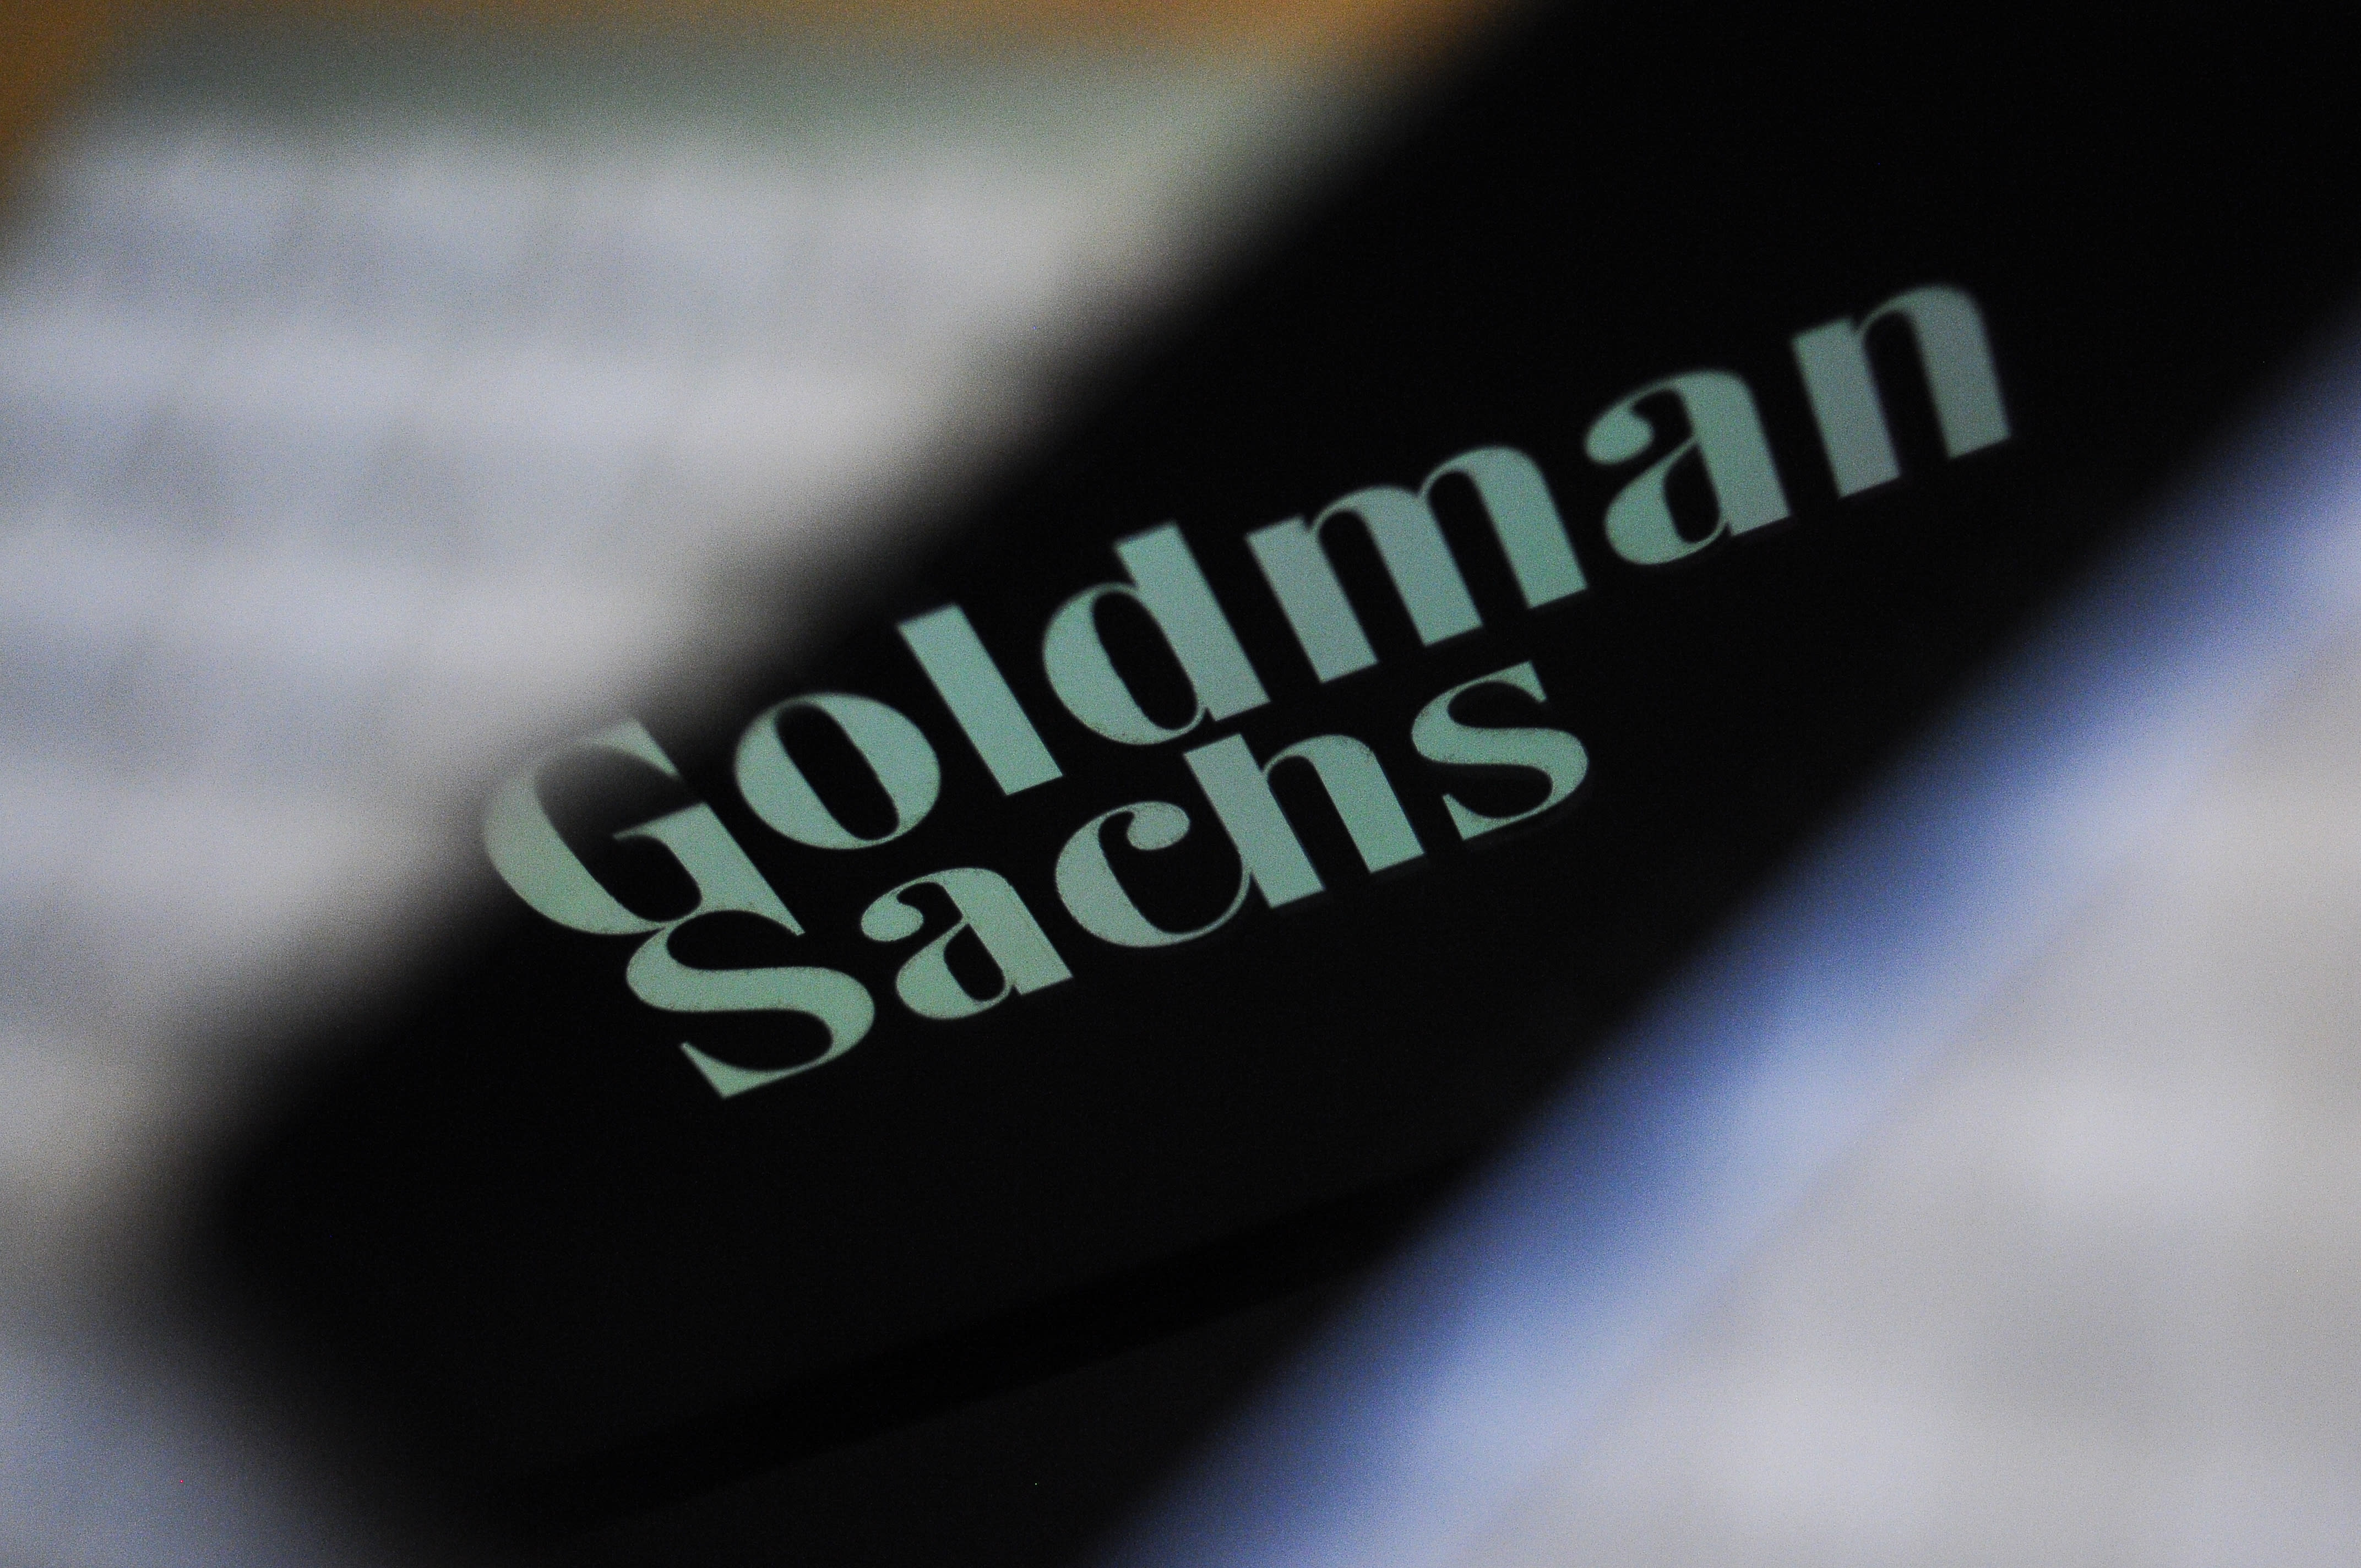 Companies to Watch: Goldman slashes rate, hacker warning from Medtronic, Mattel issues recall